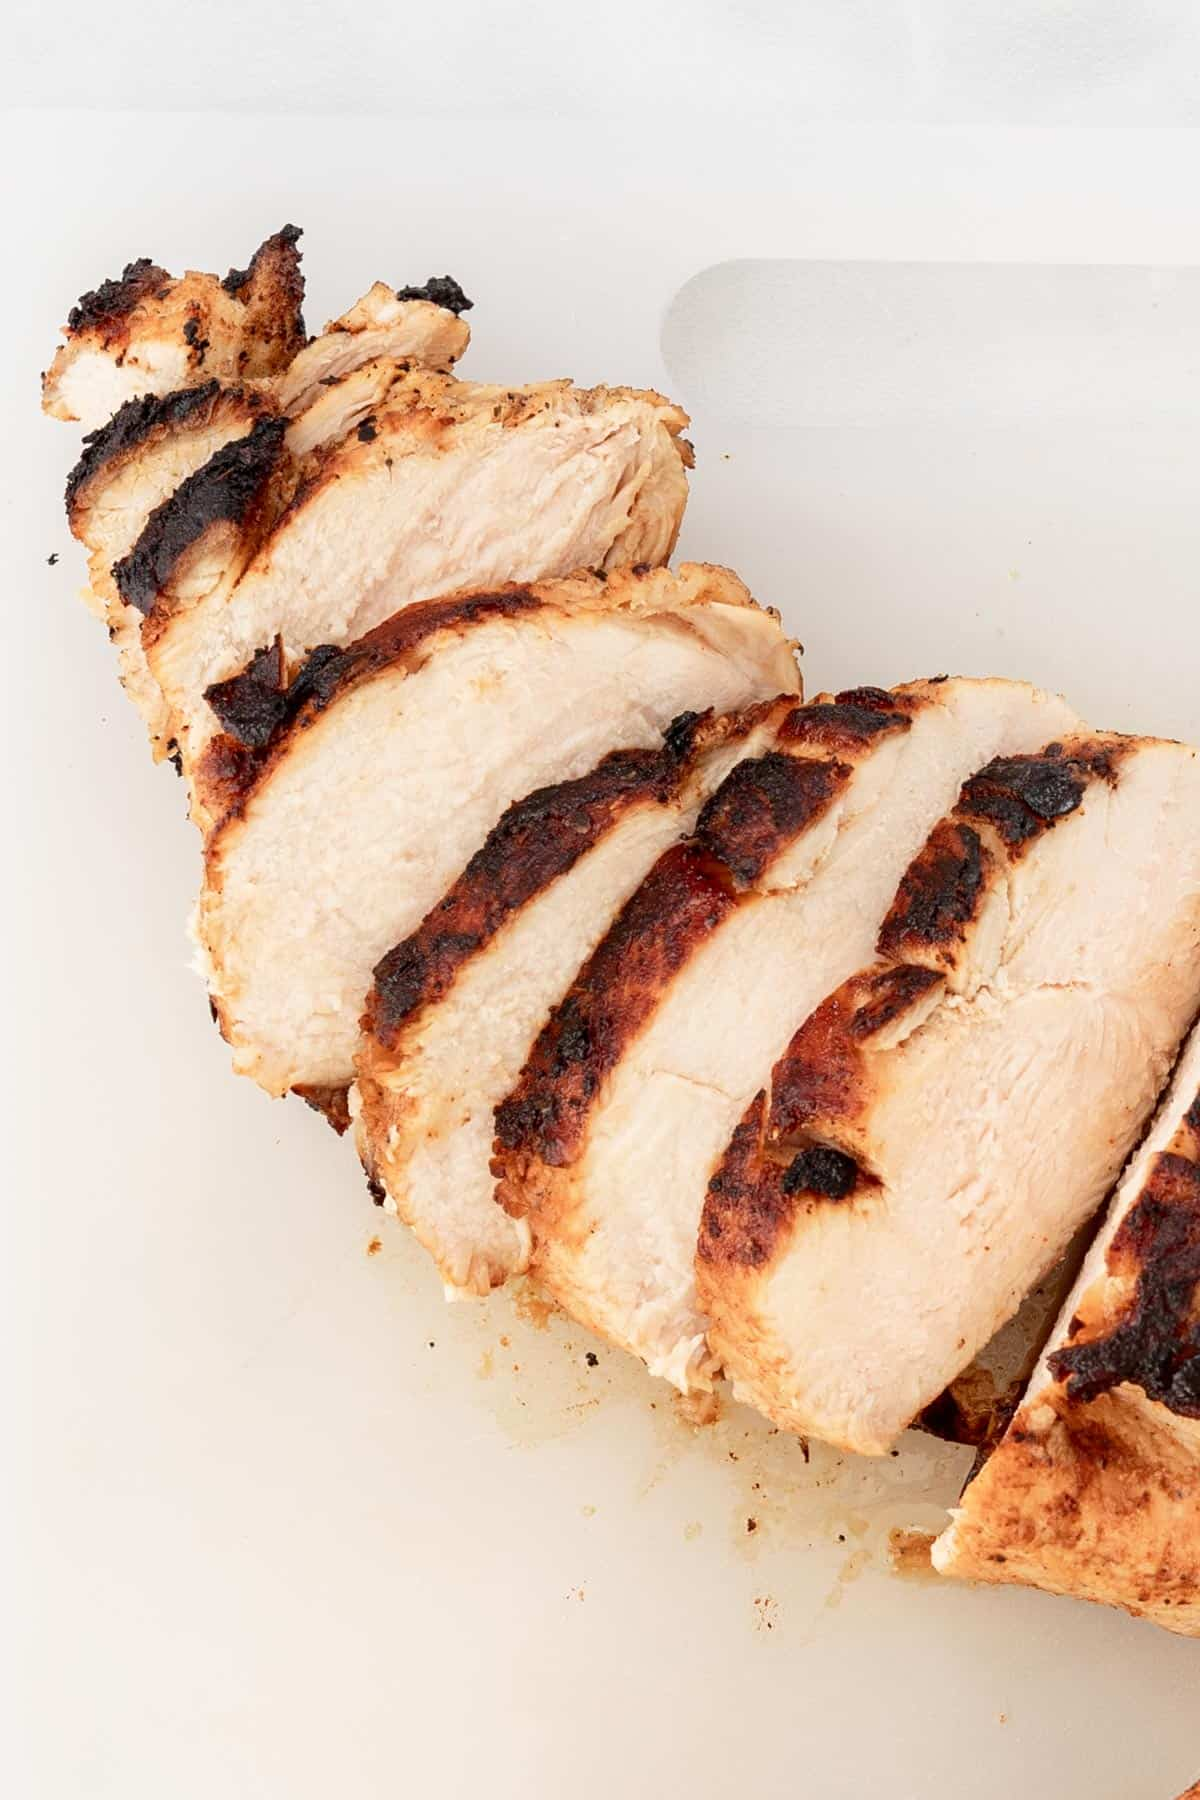 Sliced, cooked chicken breast on a white cutting board.